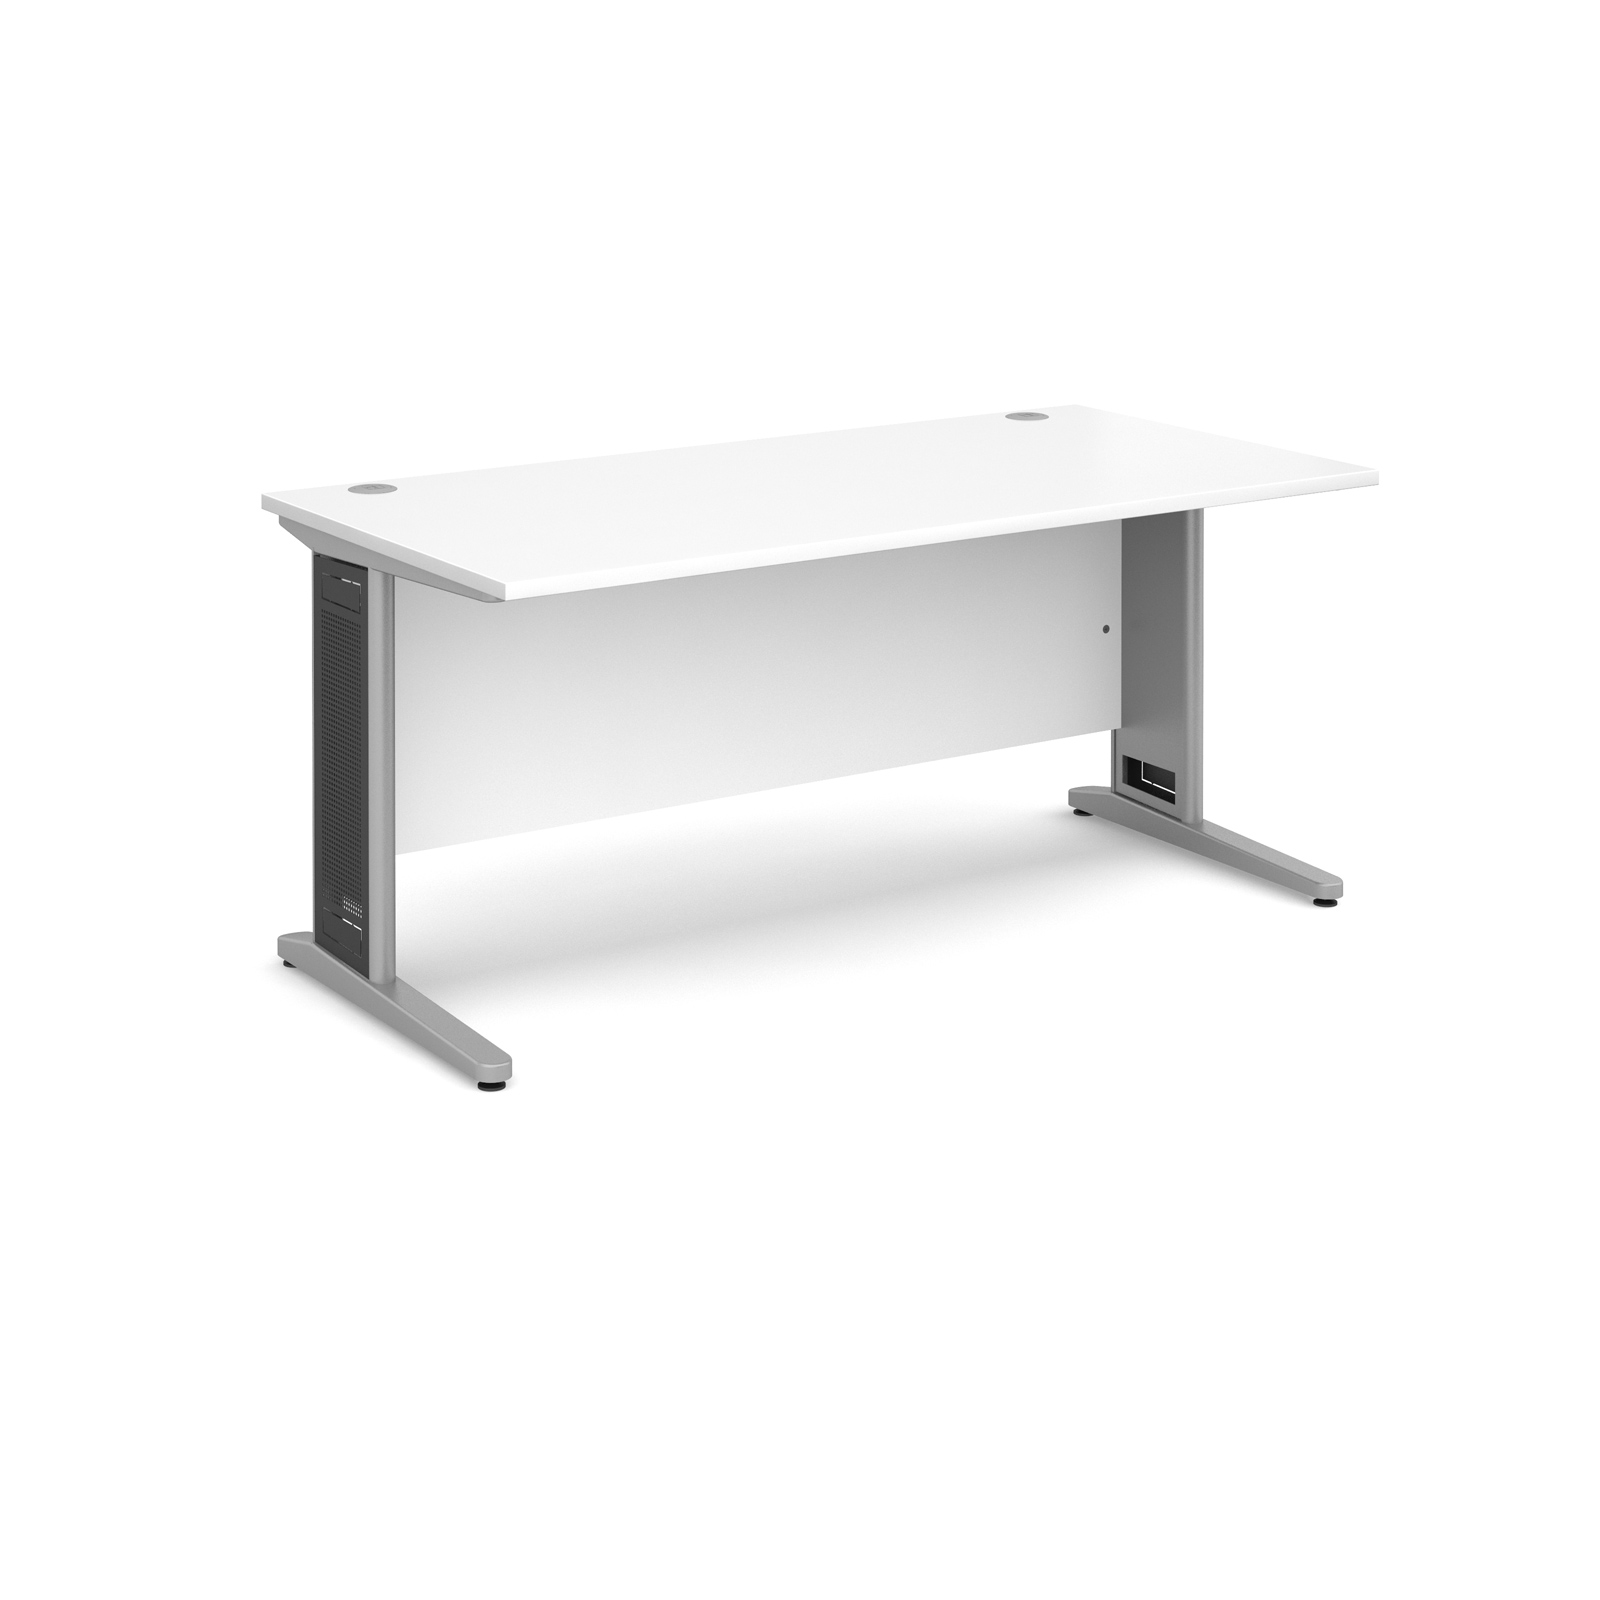 Largo straight desk 1600mm x 800mm - silver cantilever frame with removable grill, white top